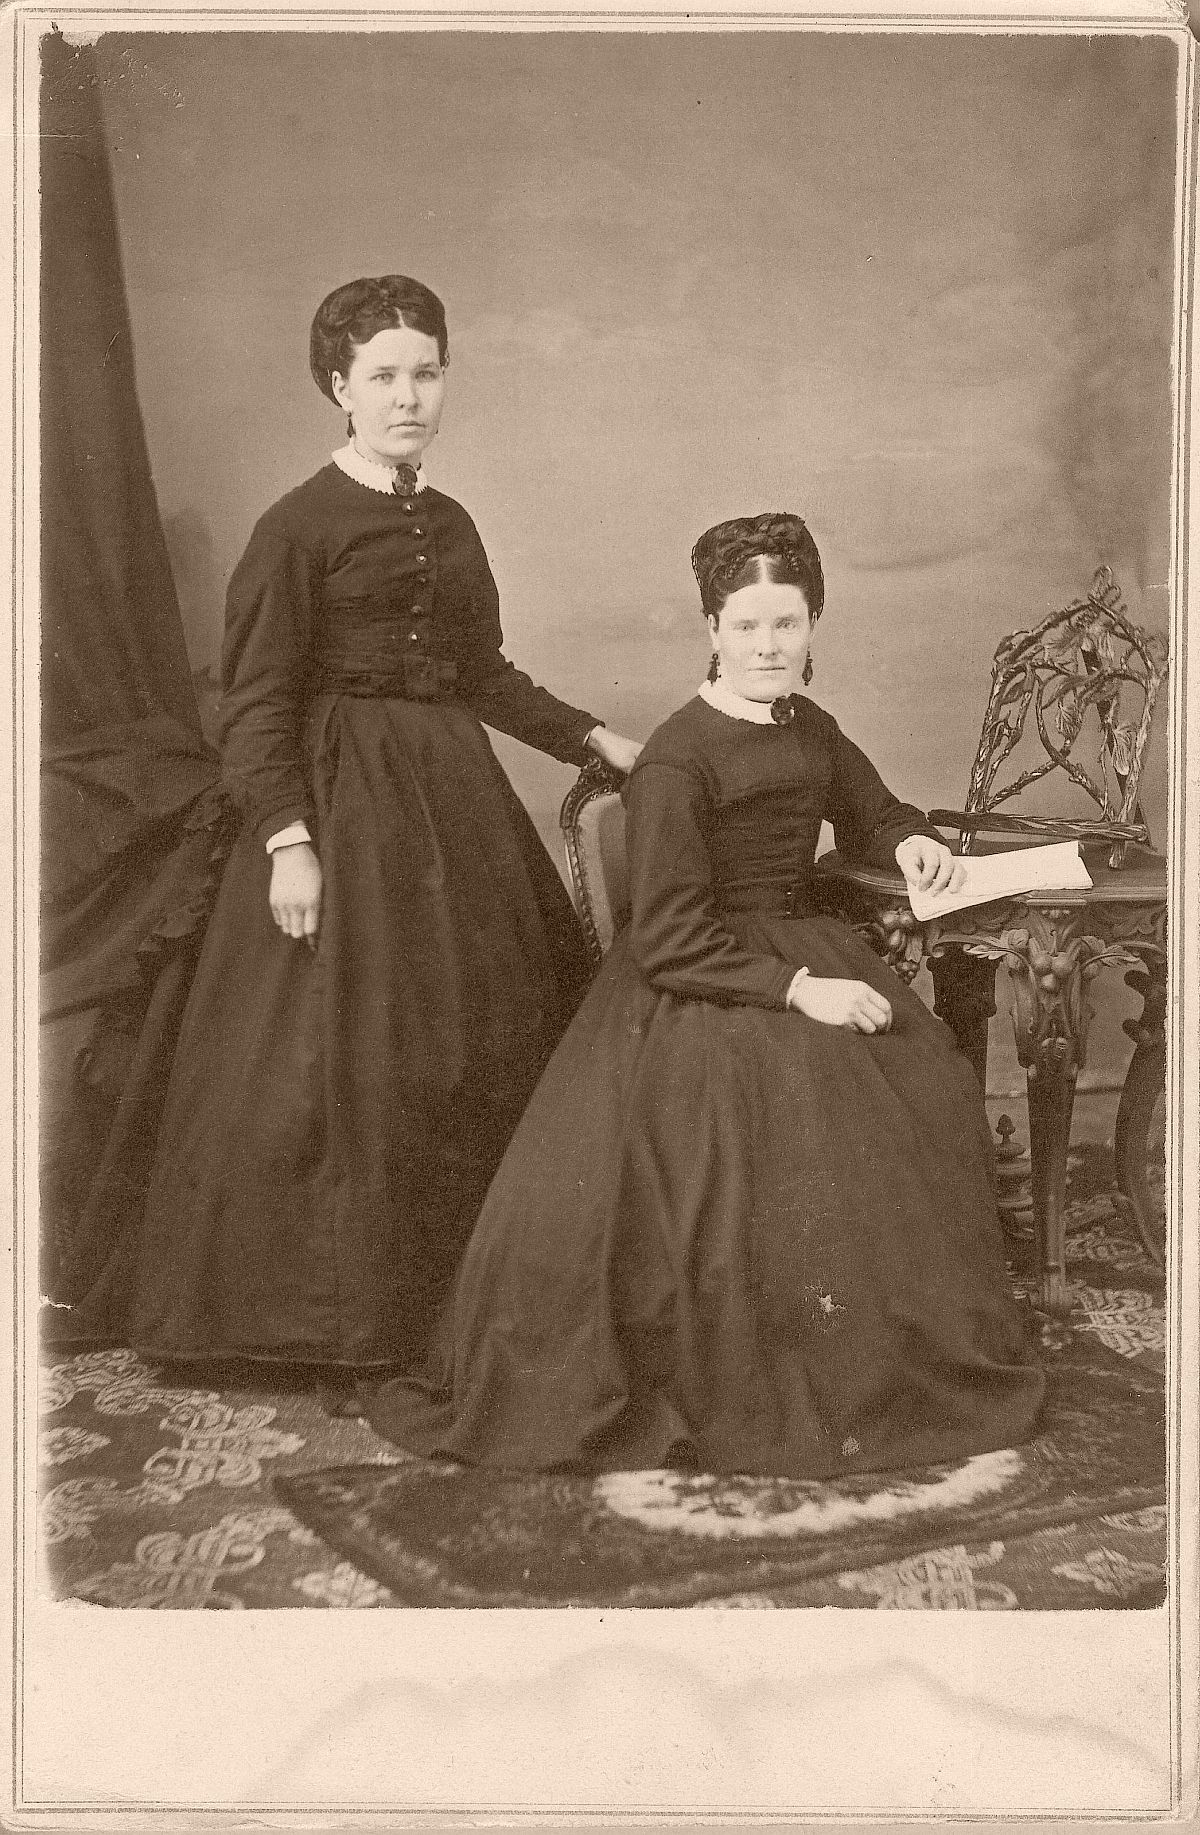 cabinet-cards-1880s-to-1890s-vintage-19th-century-victorian-era-23